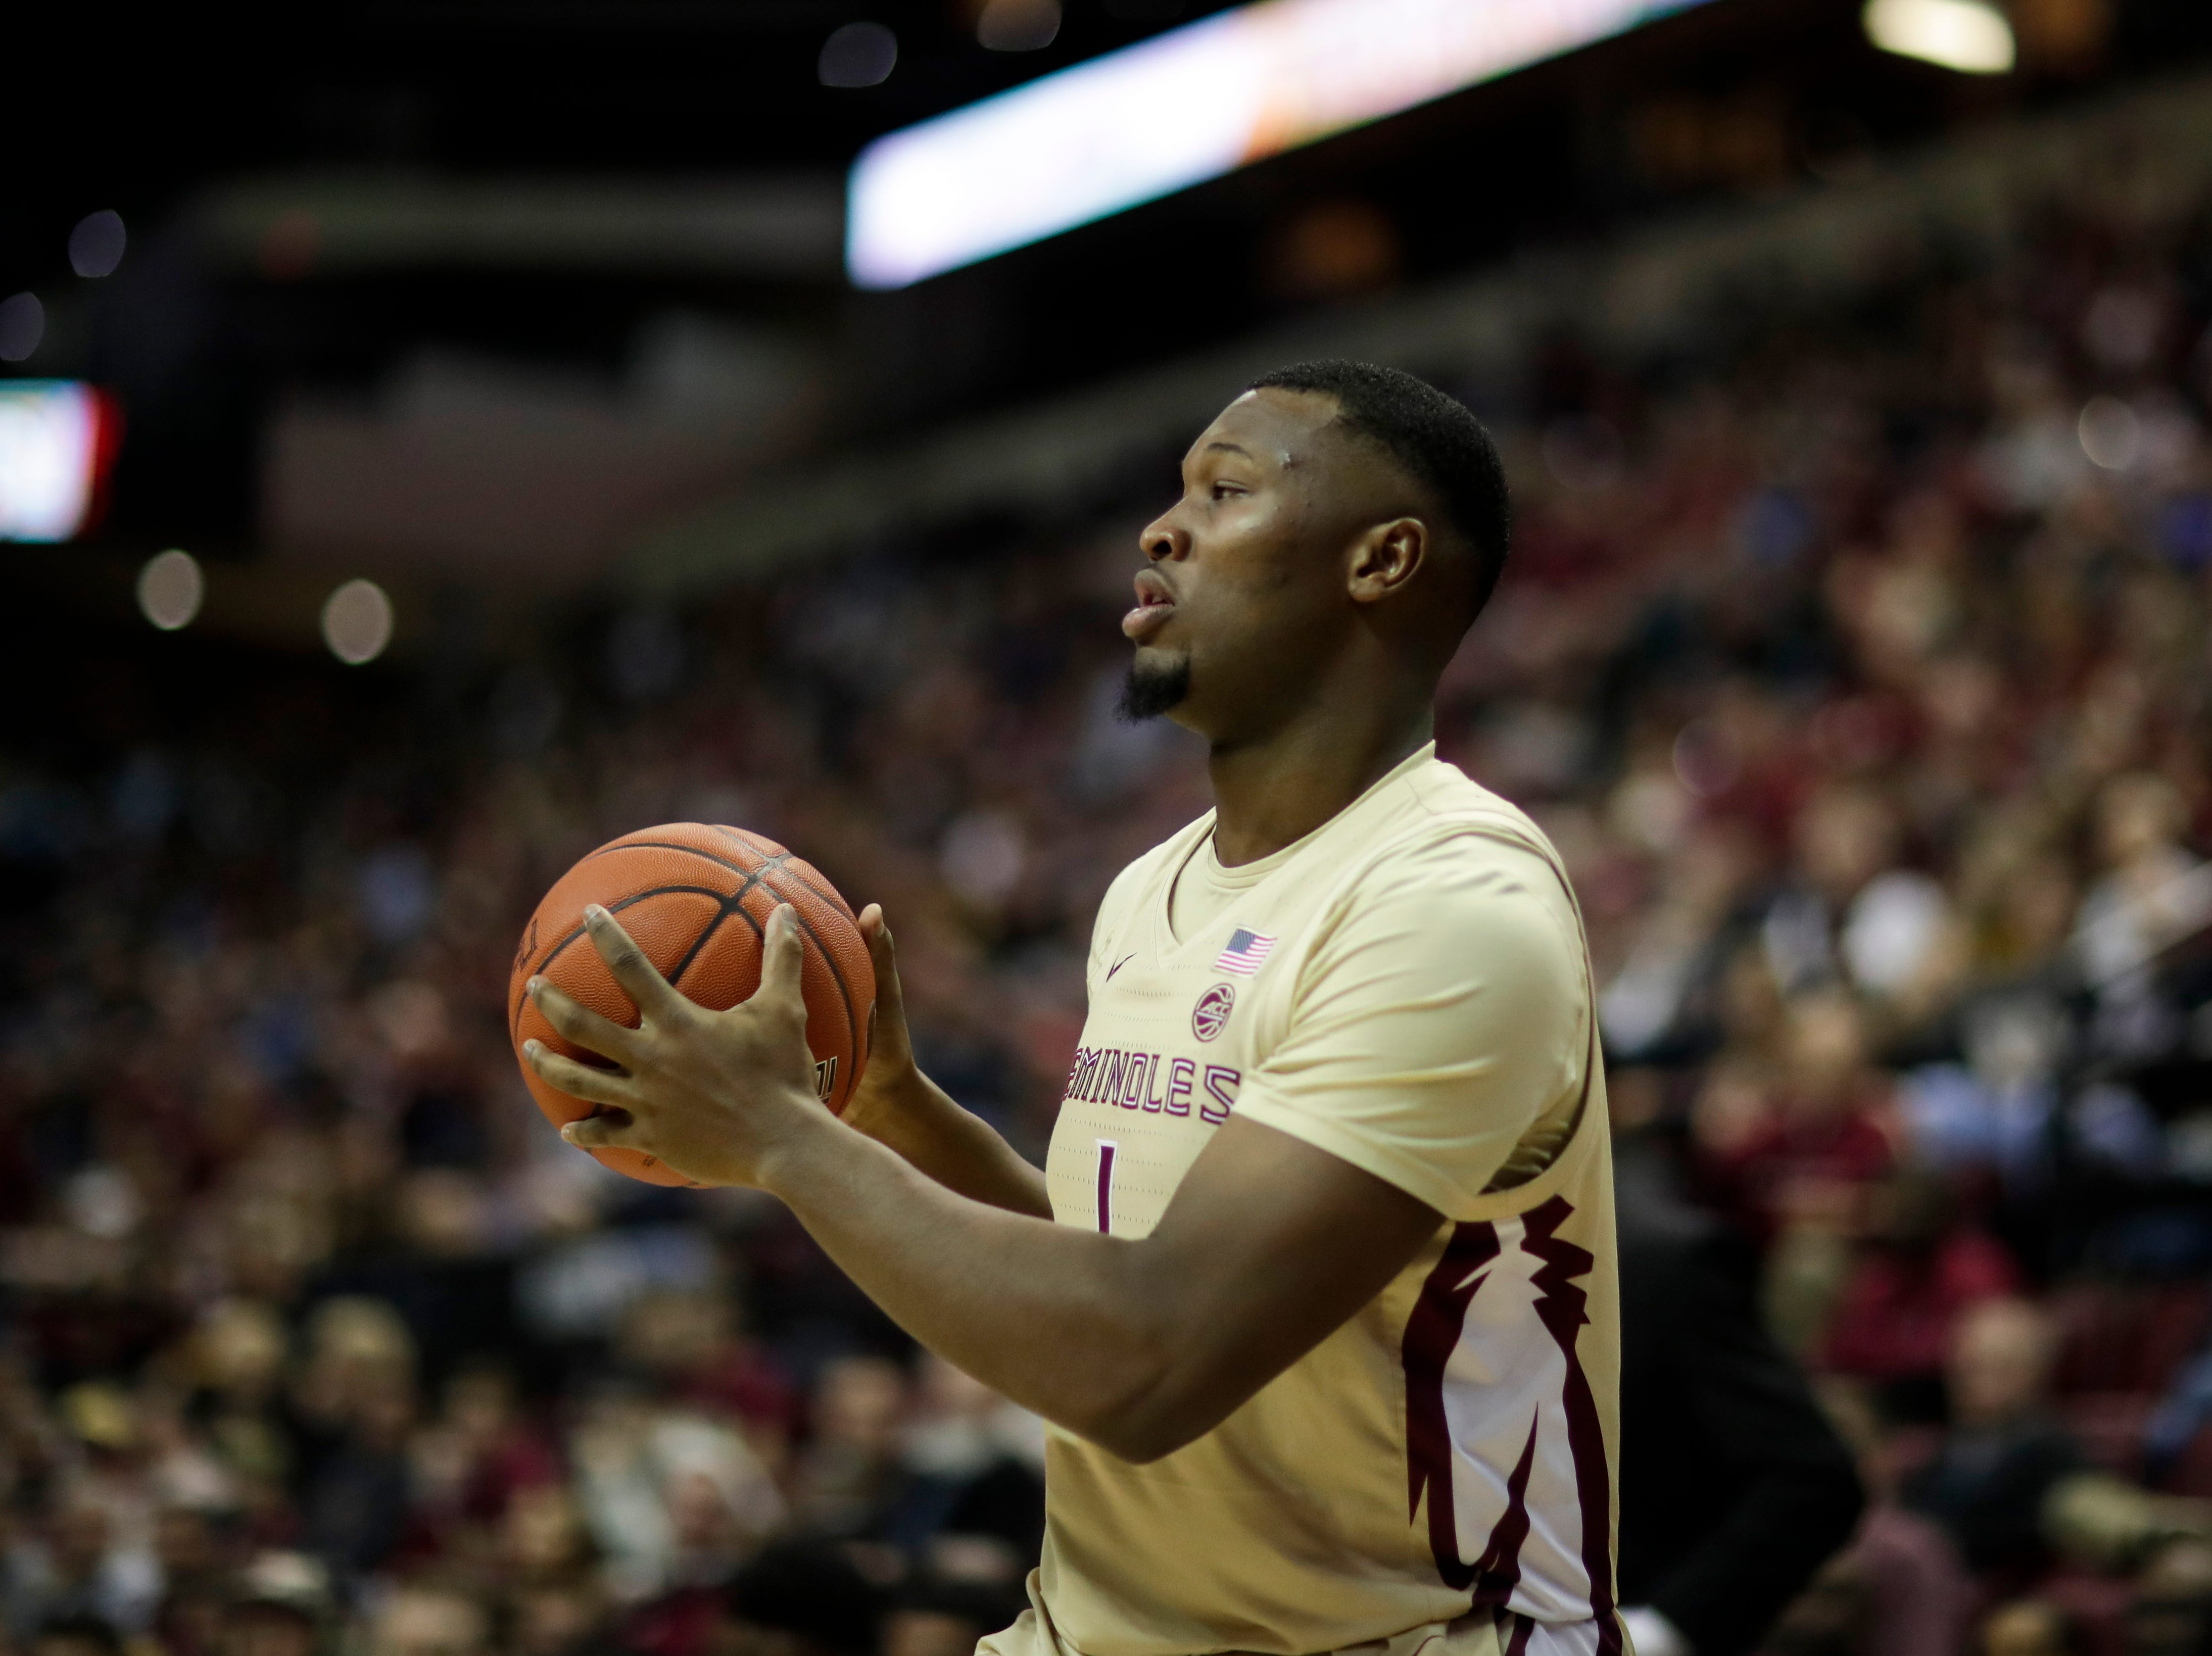 during a game between FSU and Wake Forest at the Donald L. Tucker Civic Center Wednesday, Feb. 13, 2019.